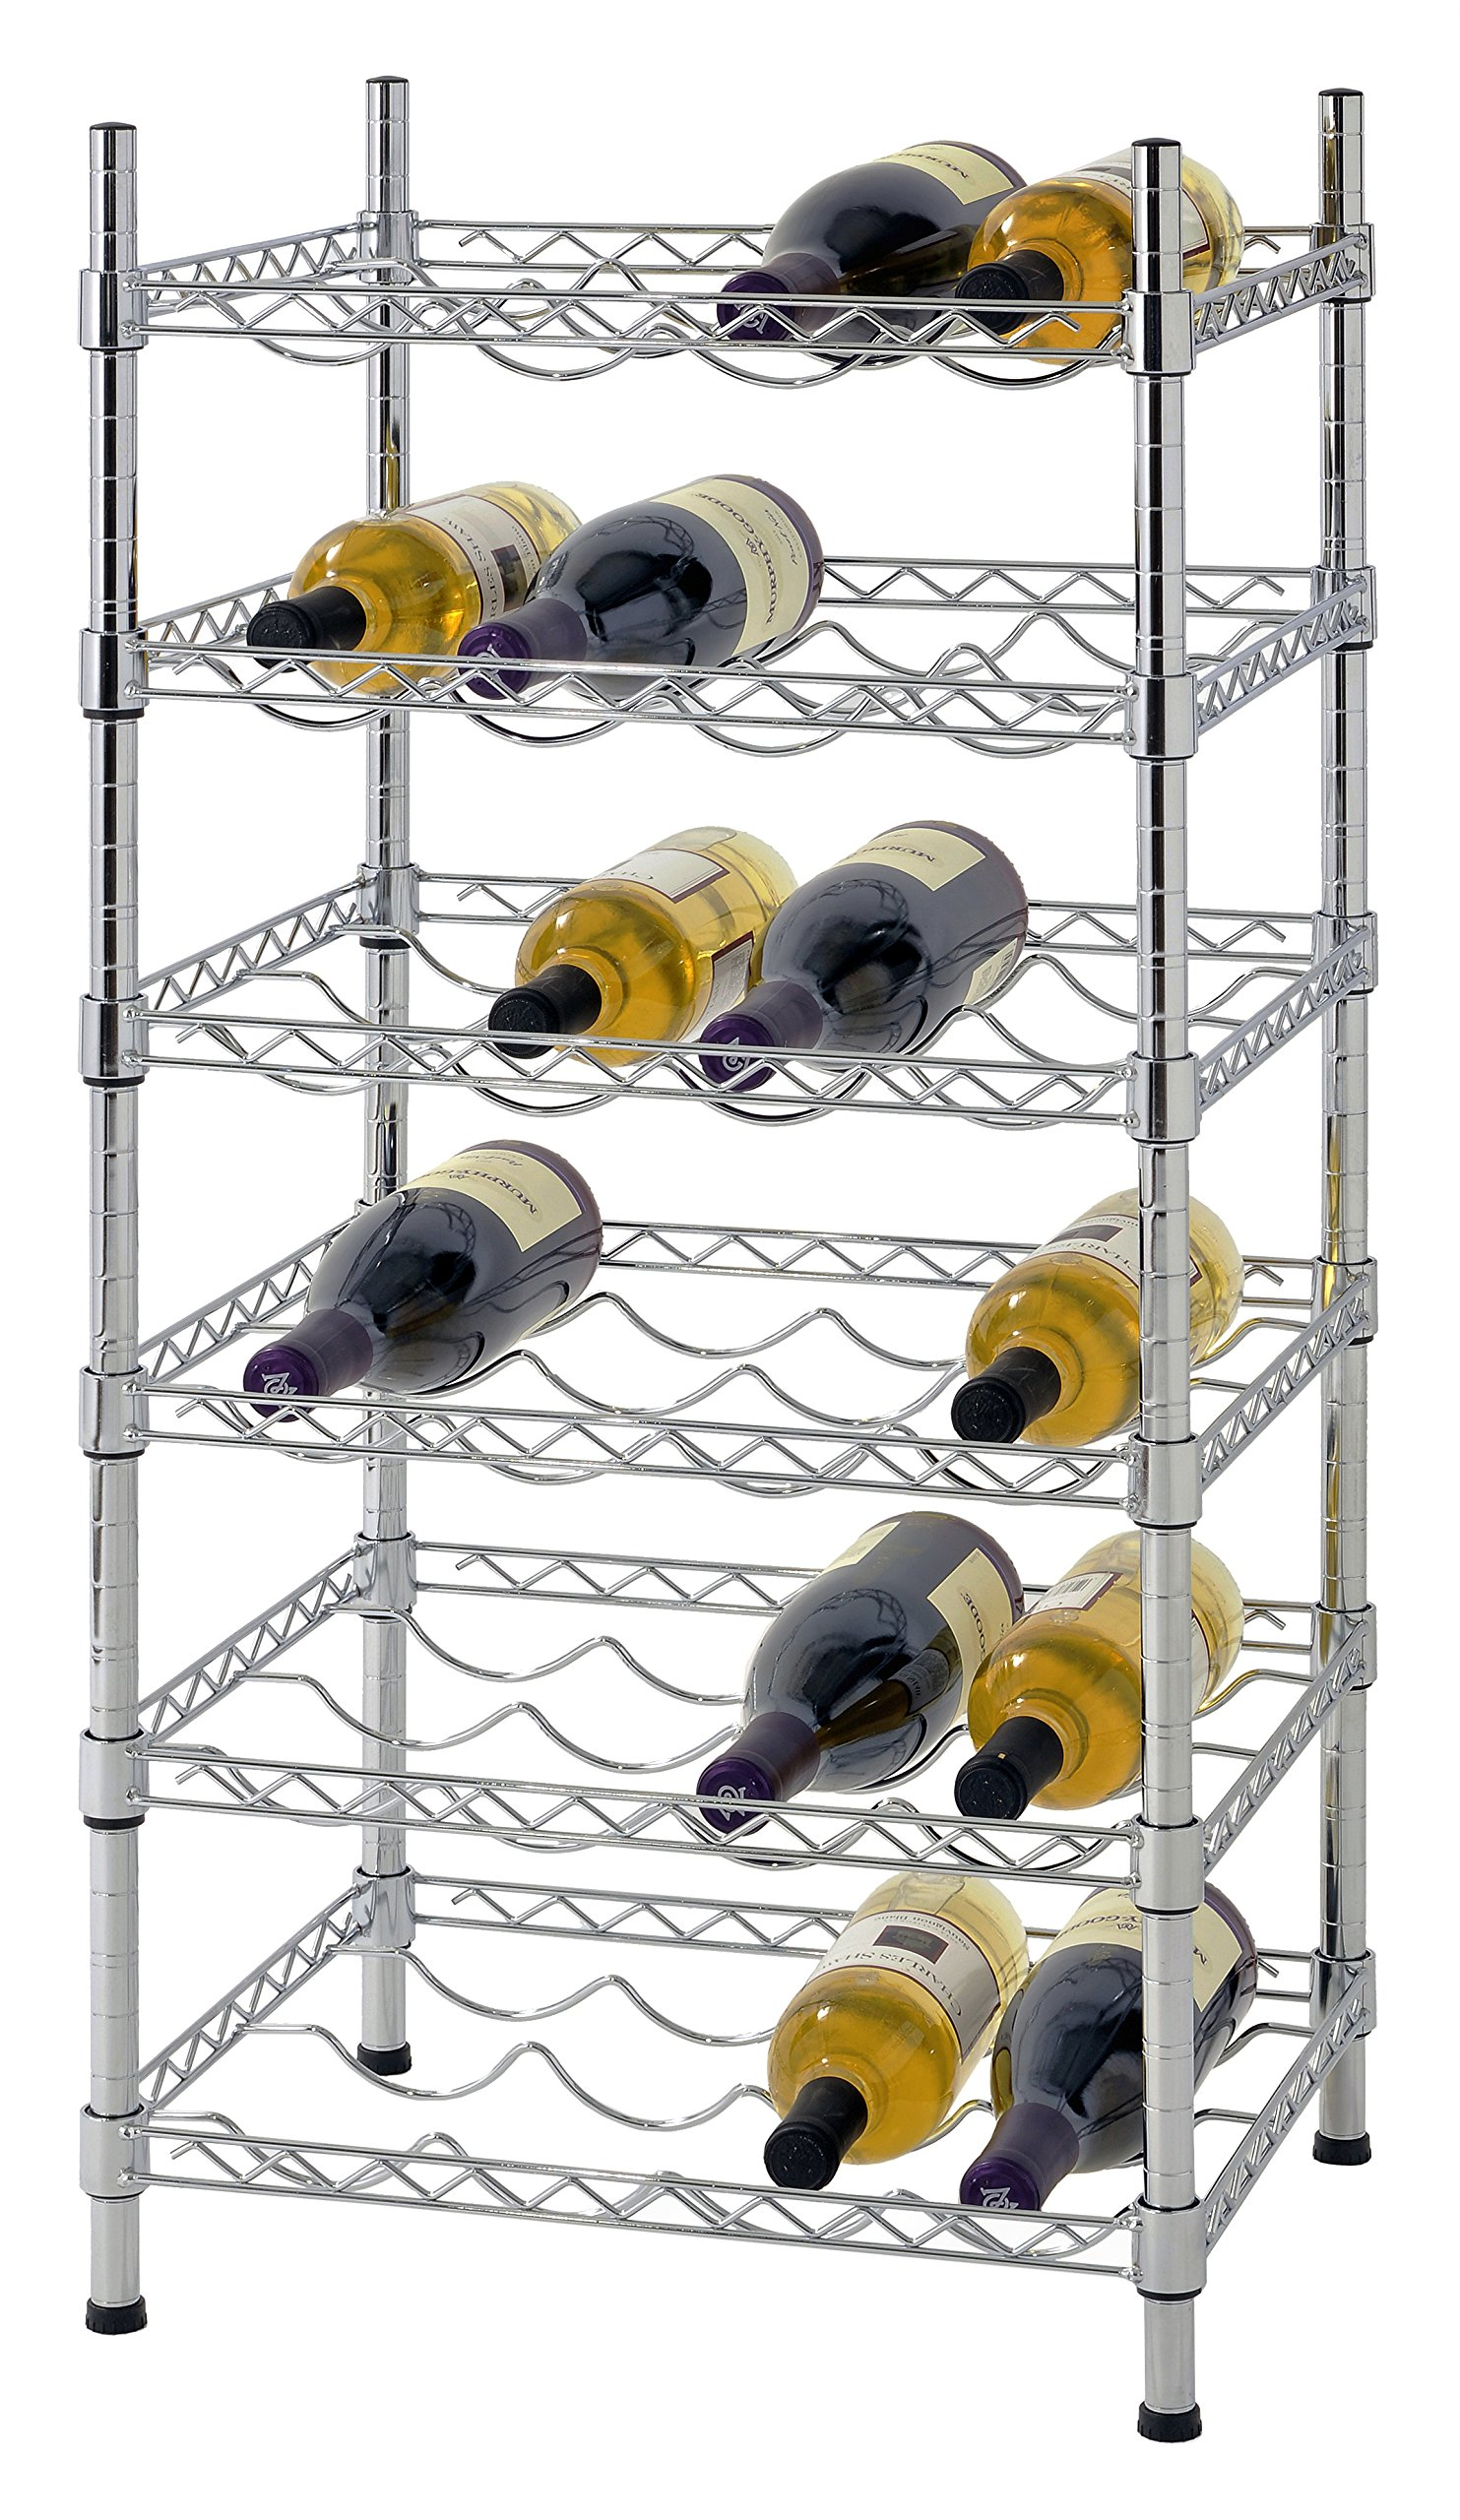 Muscle Rack WBS181435 24-Bottle Chrome Wine Rack, 18'' by 14'' by 35'', 35'' Height, 18'' Width, 660 lb. Load Capacity